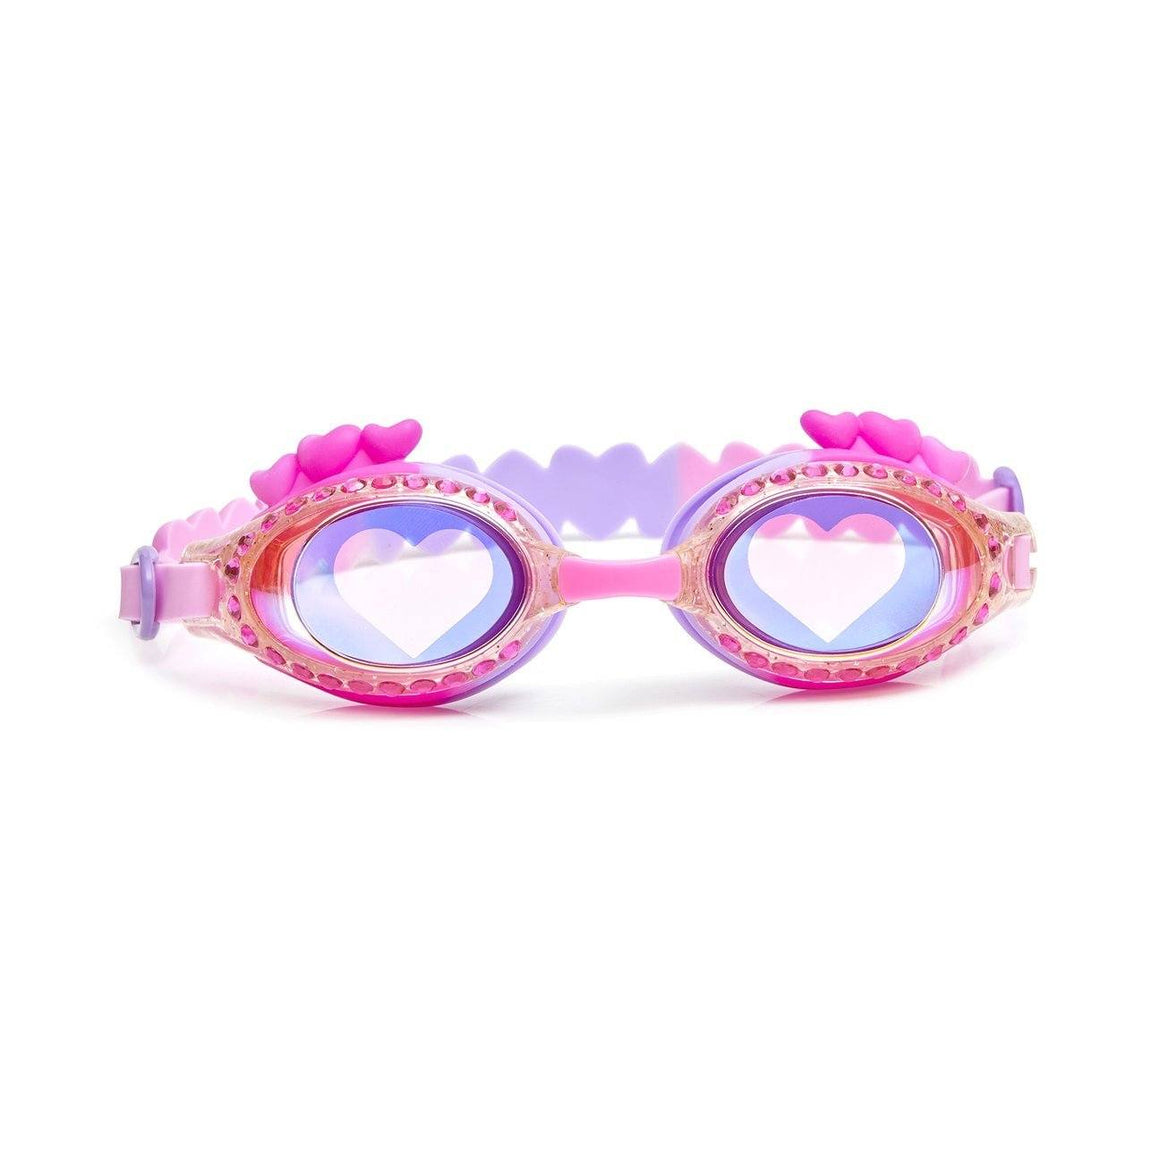 Bling2O - Luvs Me Luvs Me Not Swim Goggles - True Luv Pink Swim Goggles Bling2O